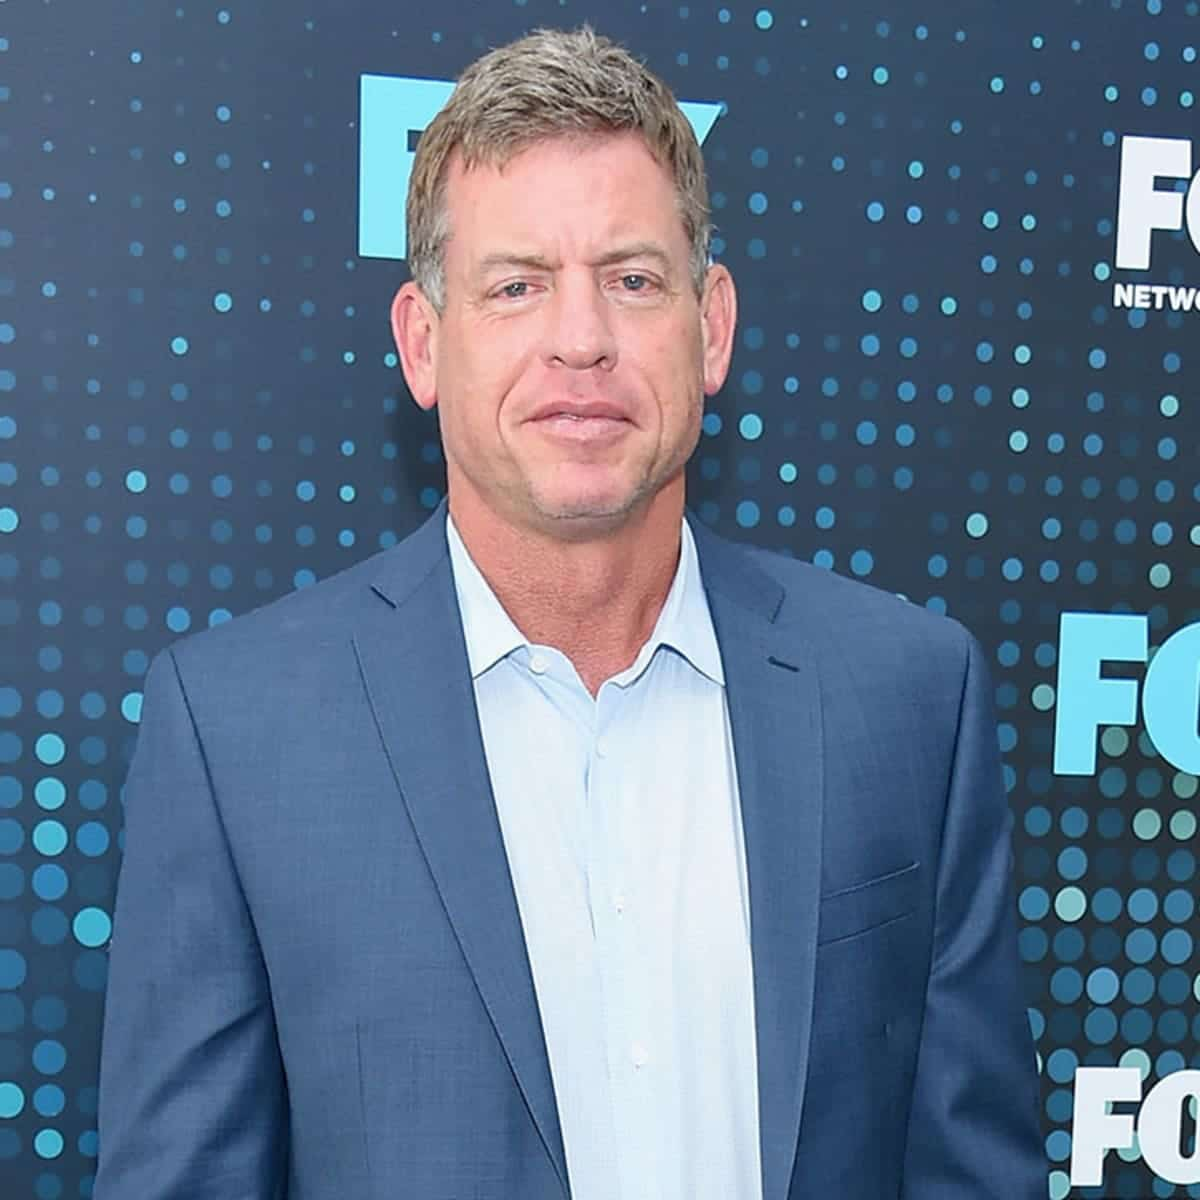 Catherine Mooty's Biography - Who is Troy Aikman's wife?